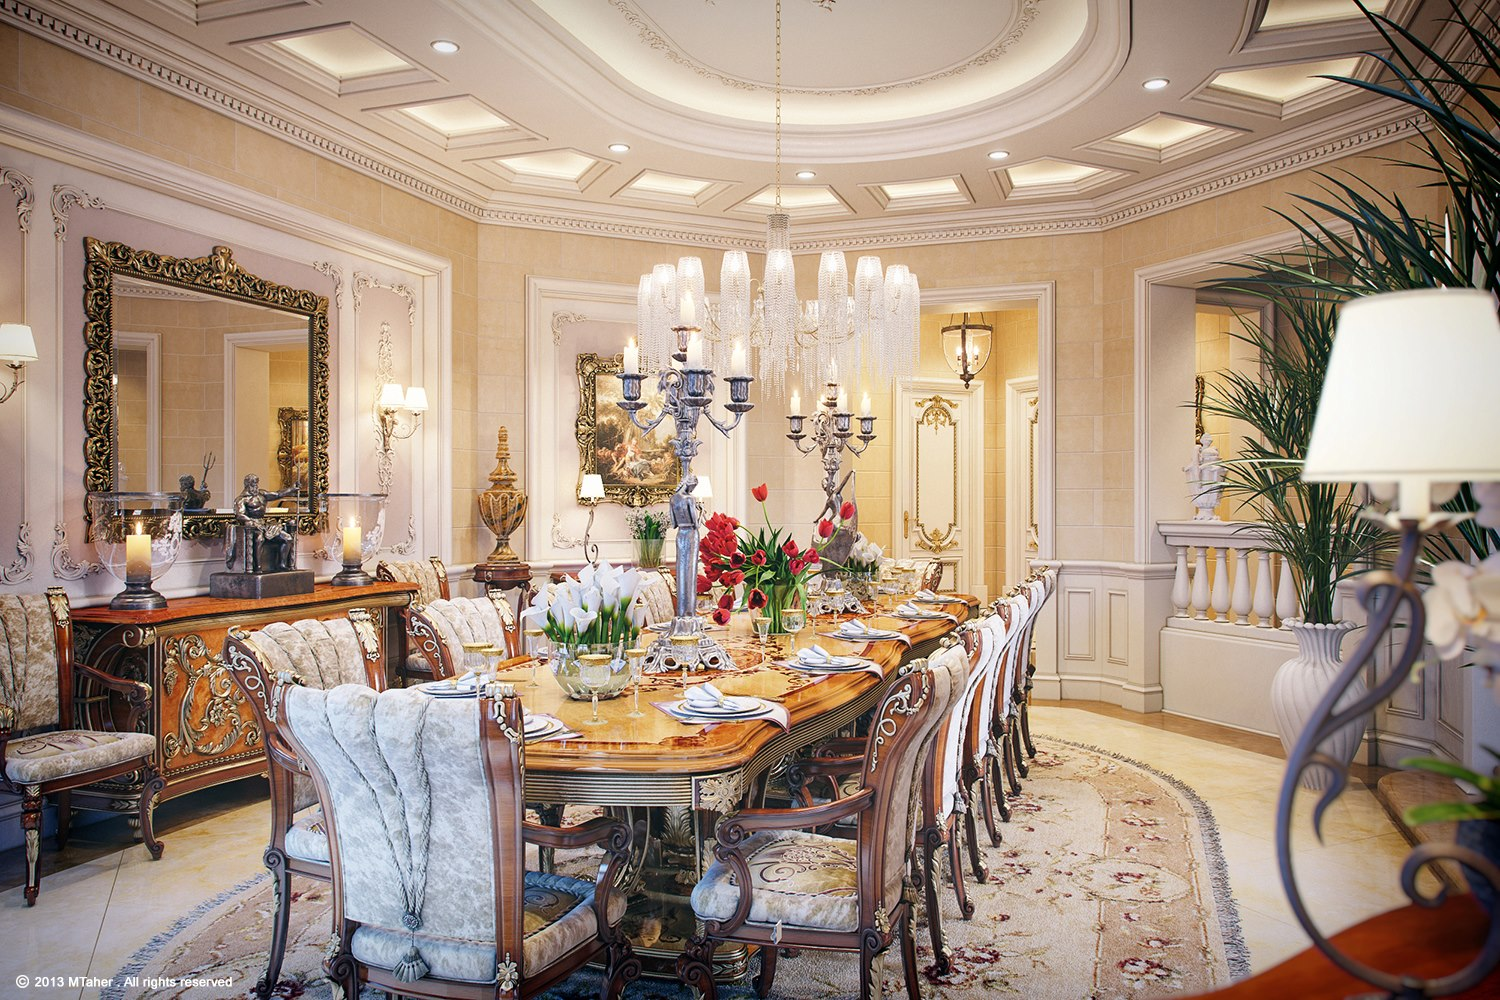 Luxury villa dining room 3 interior design ideas for House interior design dining room